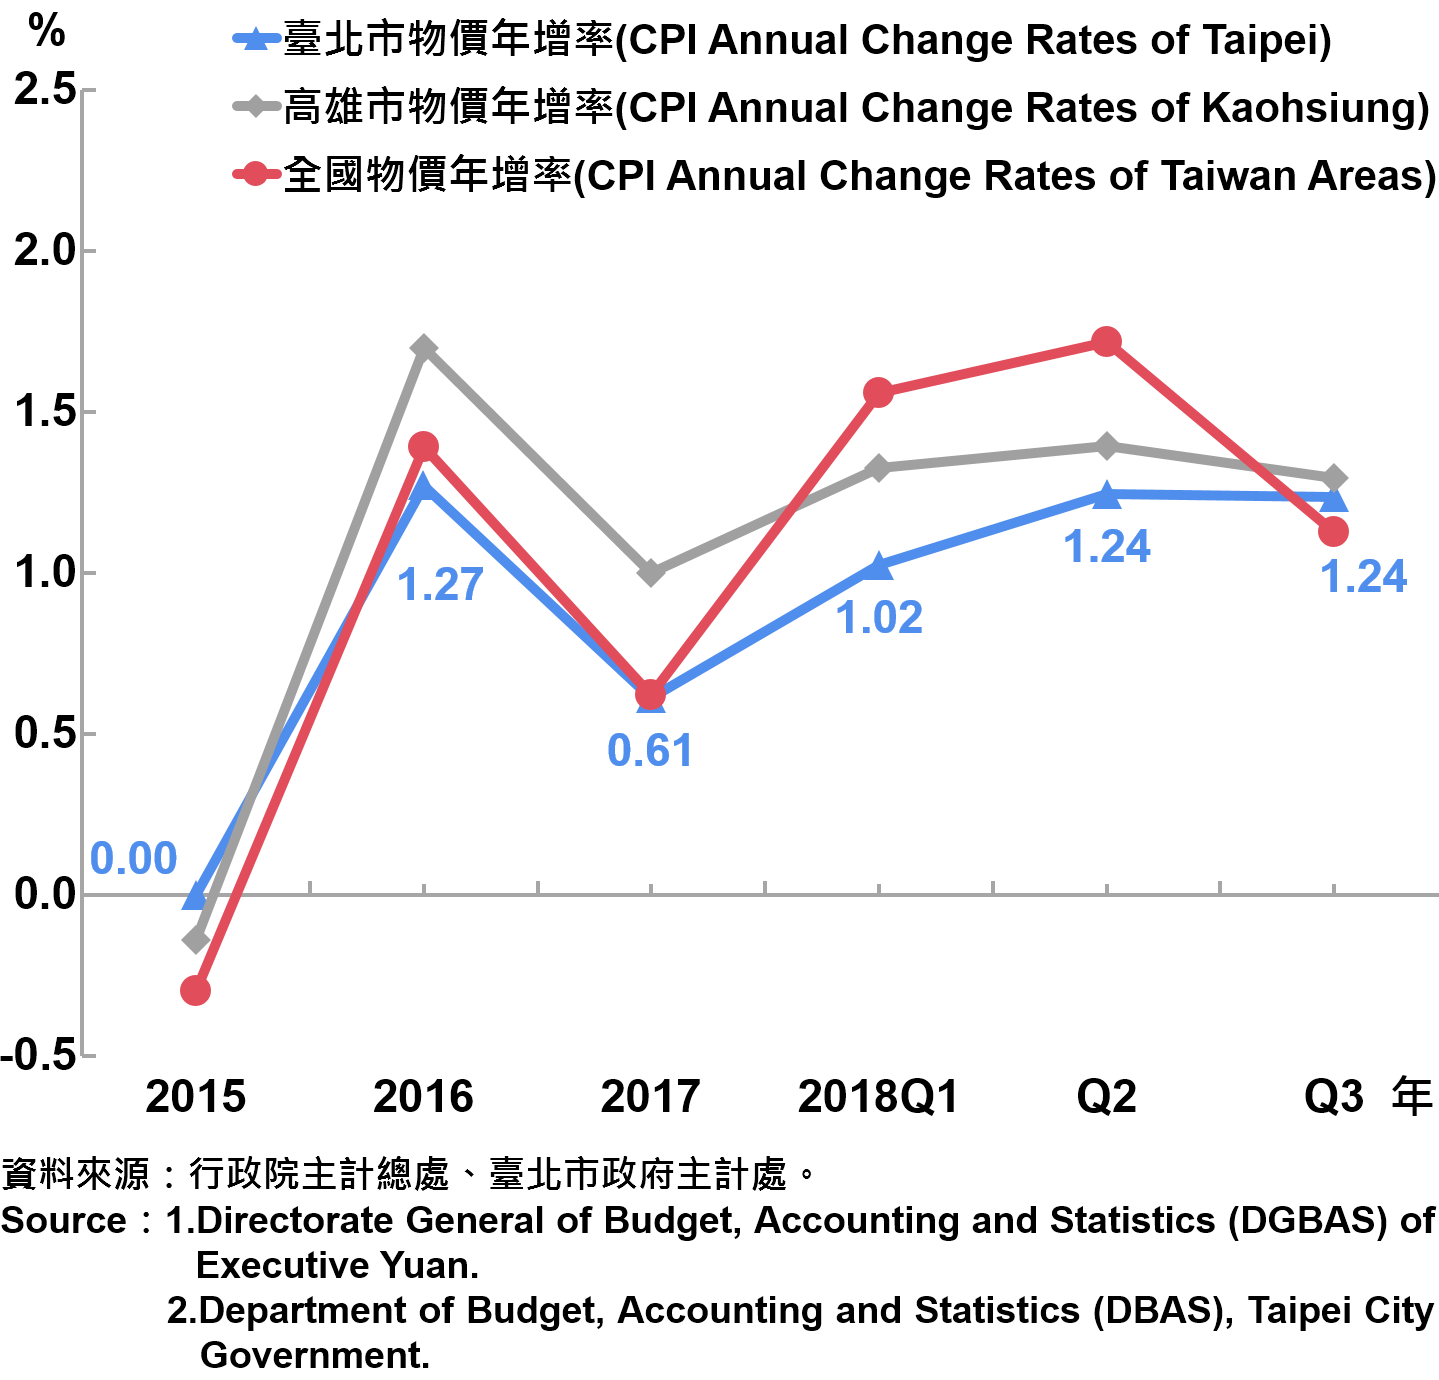 臺北市消費者物價指數(CPI)年增率—2018Q3 The Changes of CPI in Taipei City—2018Q3